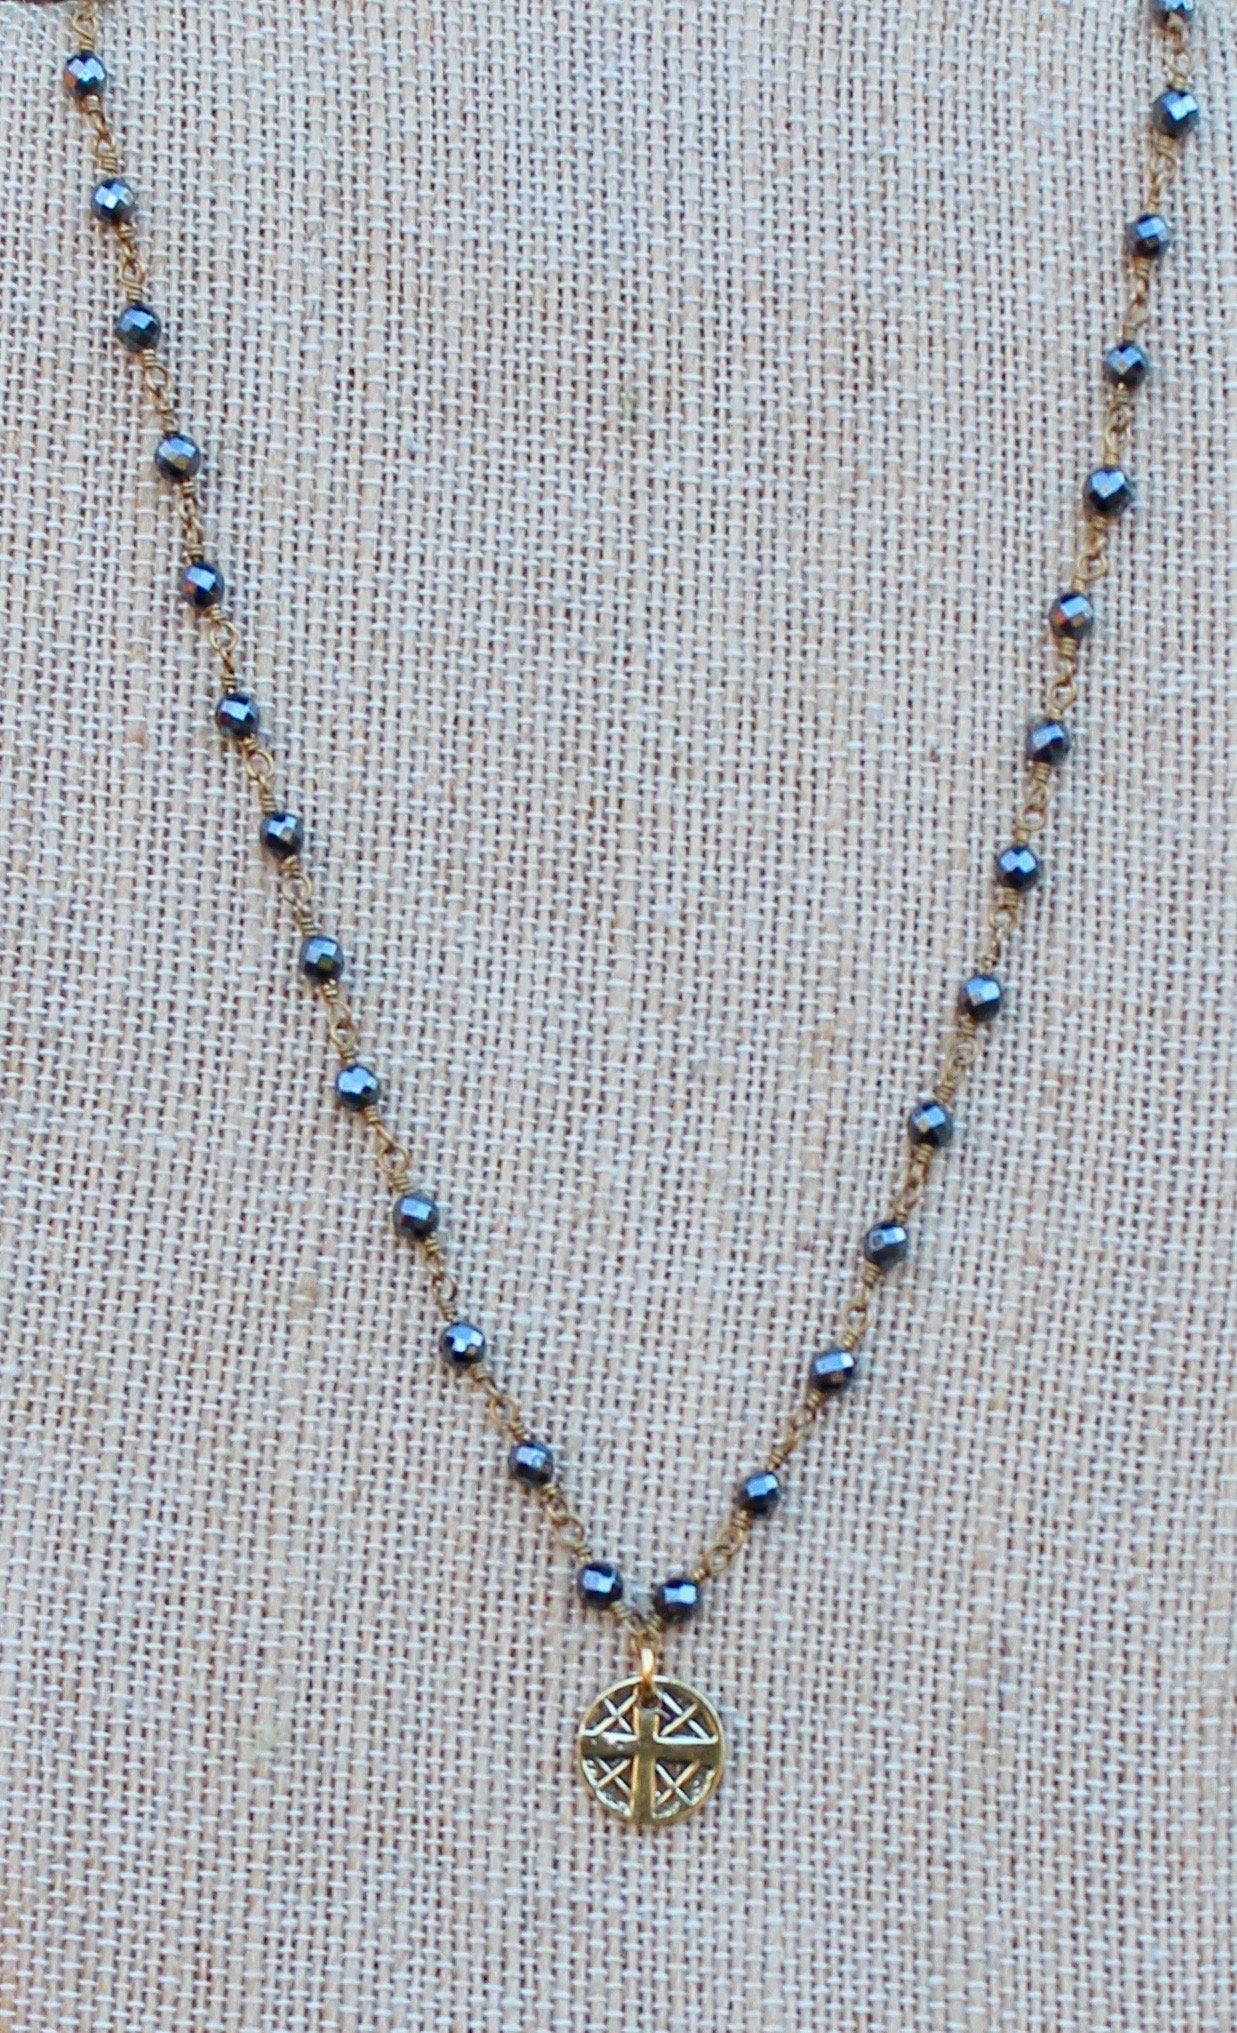 N140GH; Small Goldtone Round Cross ; 3mm Goldtone Hematite Chain; Approximately 16 inches; ; ; ; Majestees